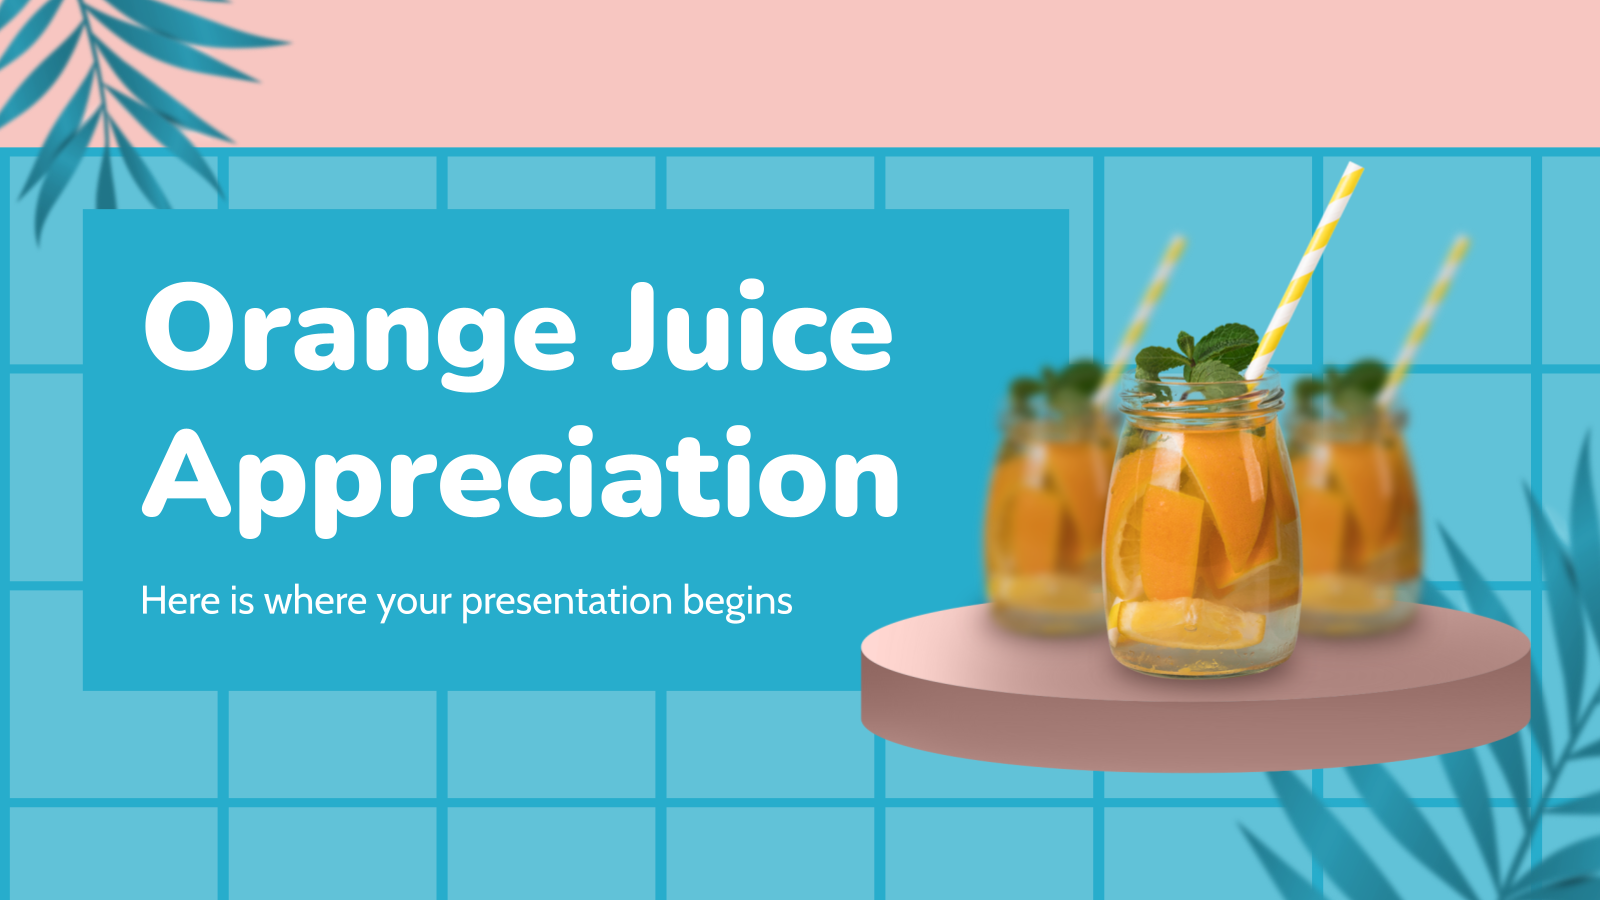 Orange Juice Appreciation presentation template